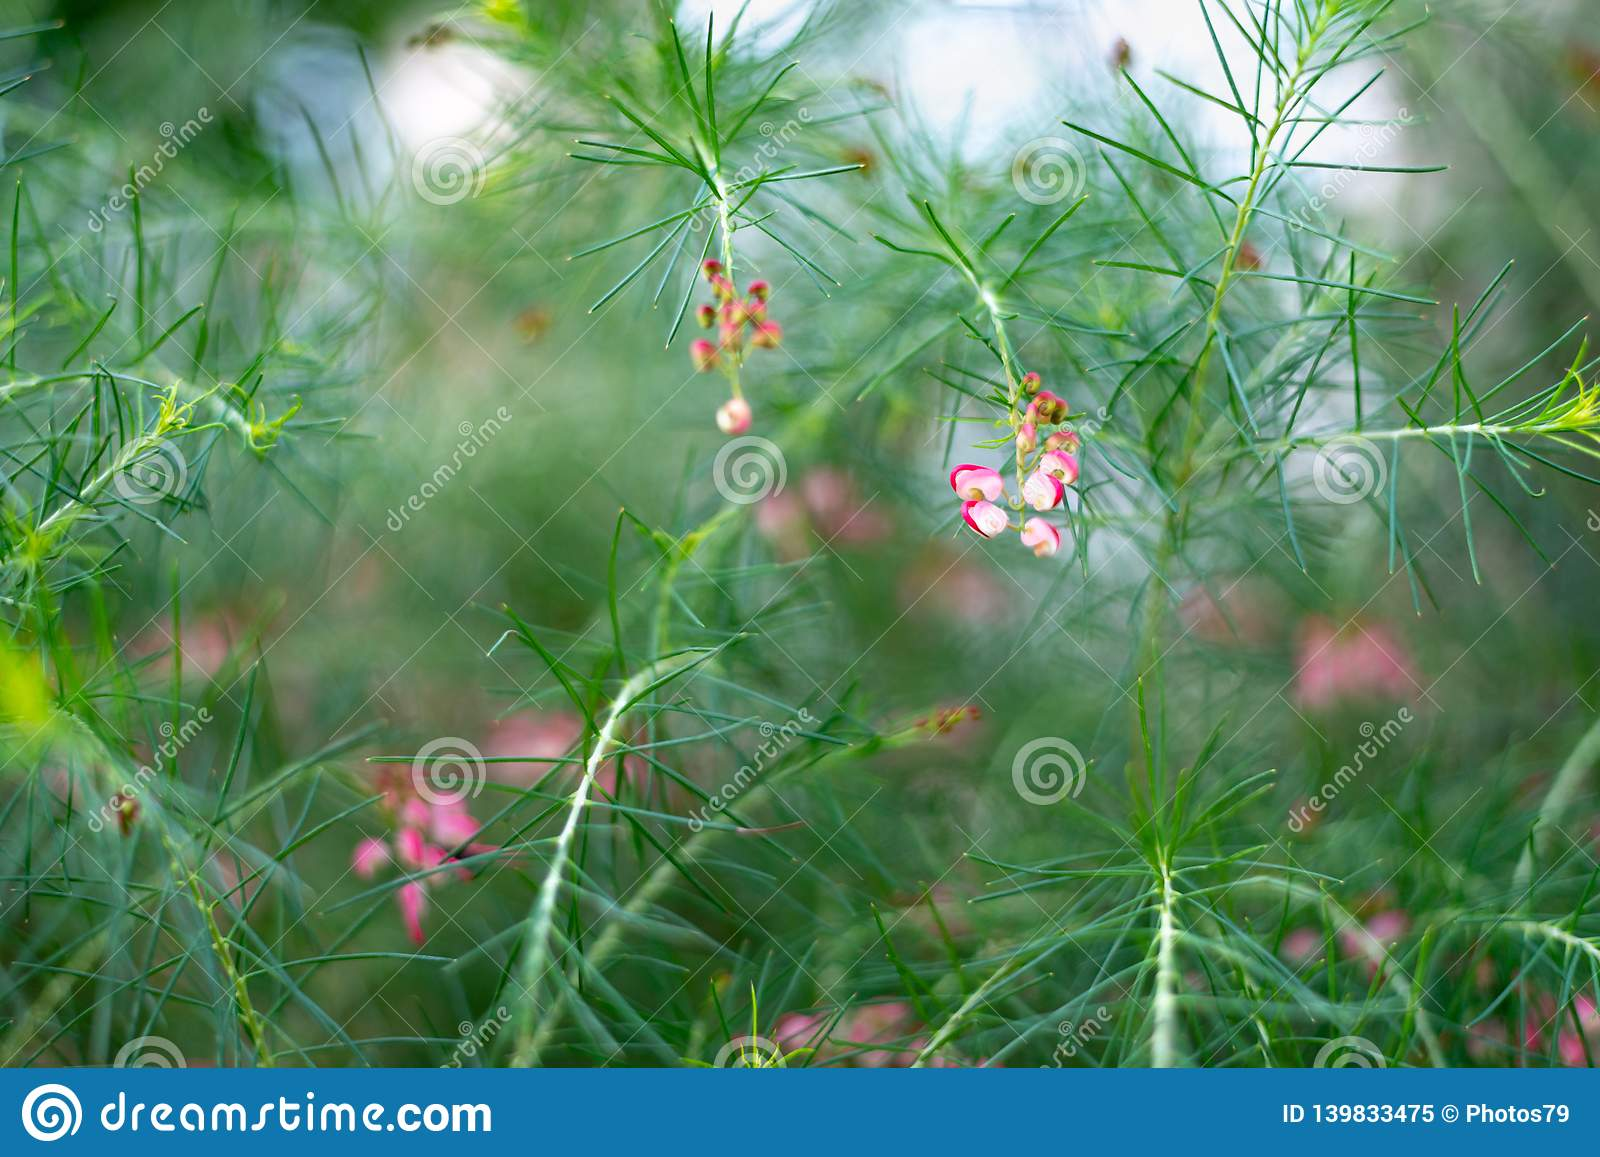 Grevillea rosmarinifolia branch with red flowers